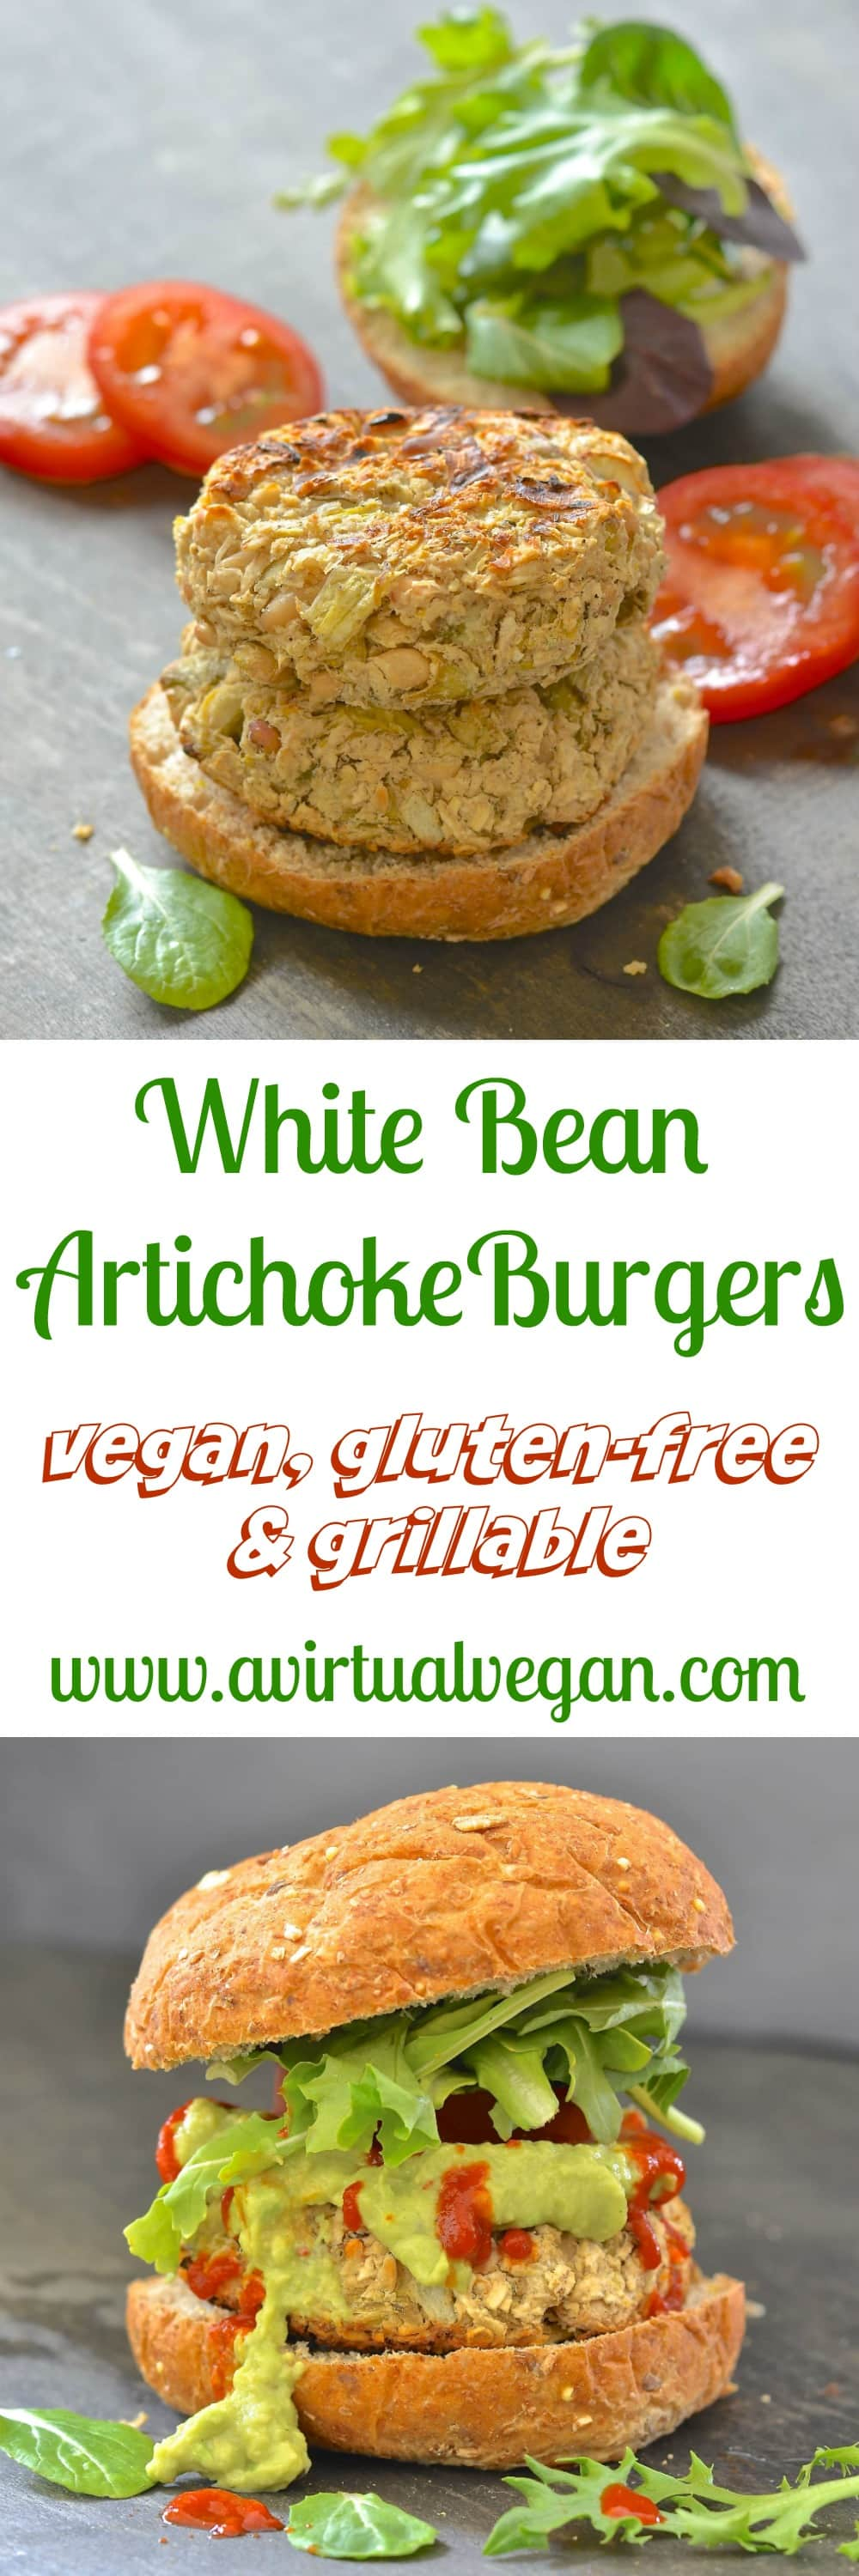 Easy & incredibly tasty White Bean Artichoke Burgers with hints of lemon & rosemary. Perfect served with lots of gloriously green guacamole & a dribble of hot sauce!